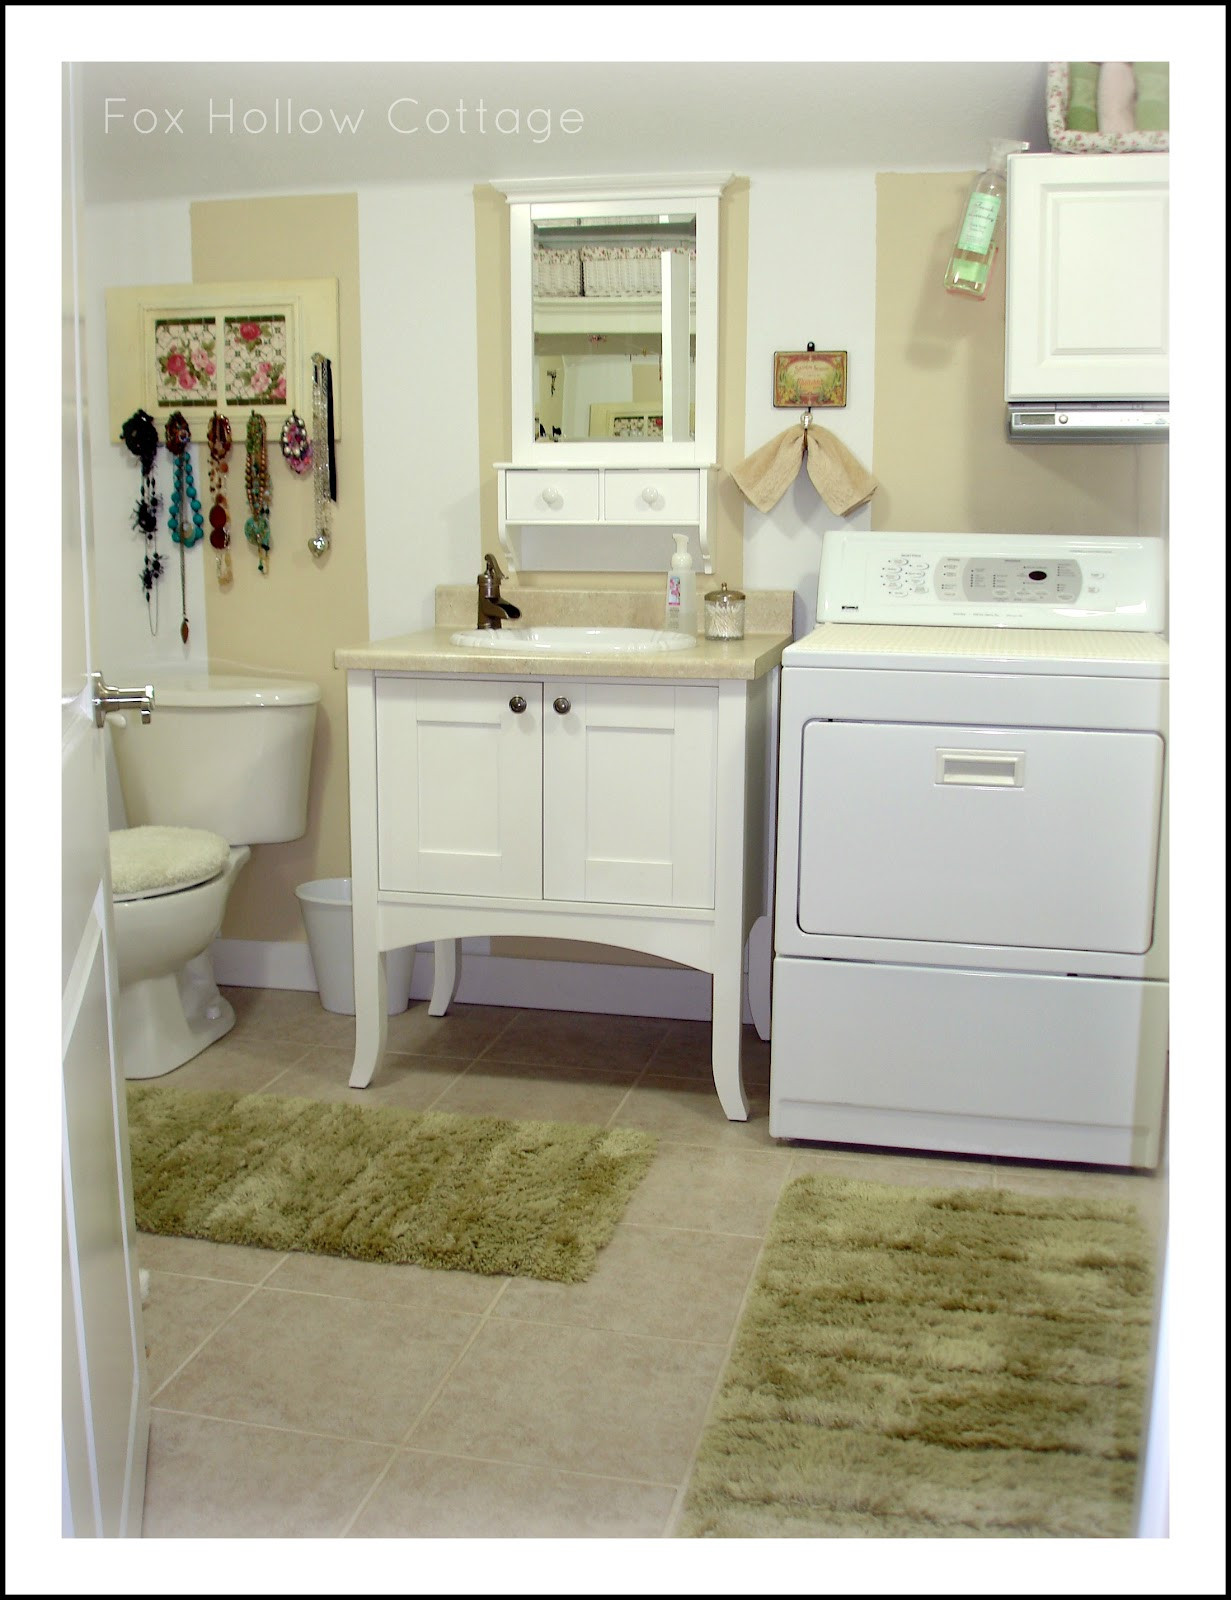 a bathroom story the zingy refresher fox hollow cottage a bathroom story the zingy refresher